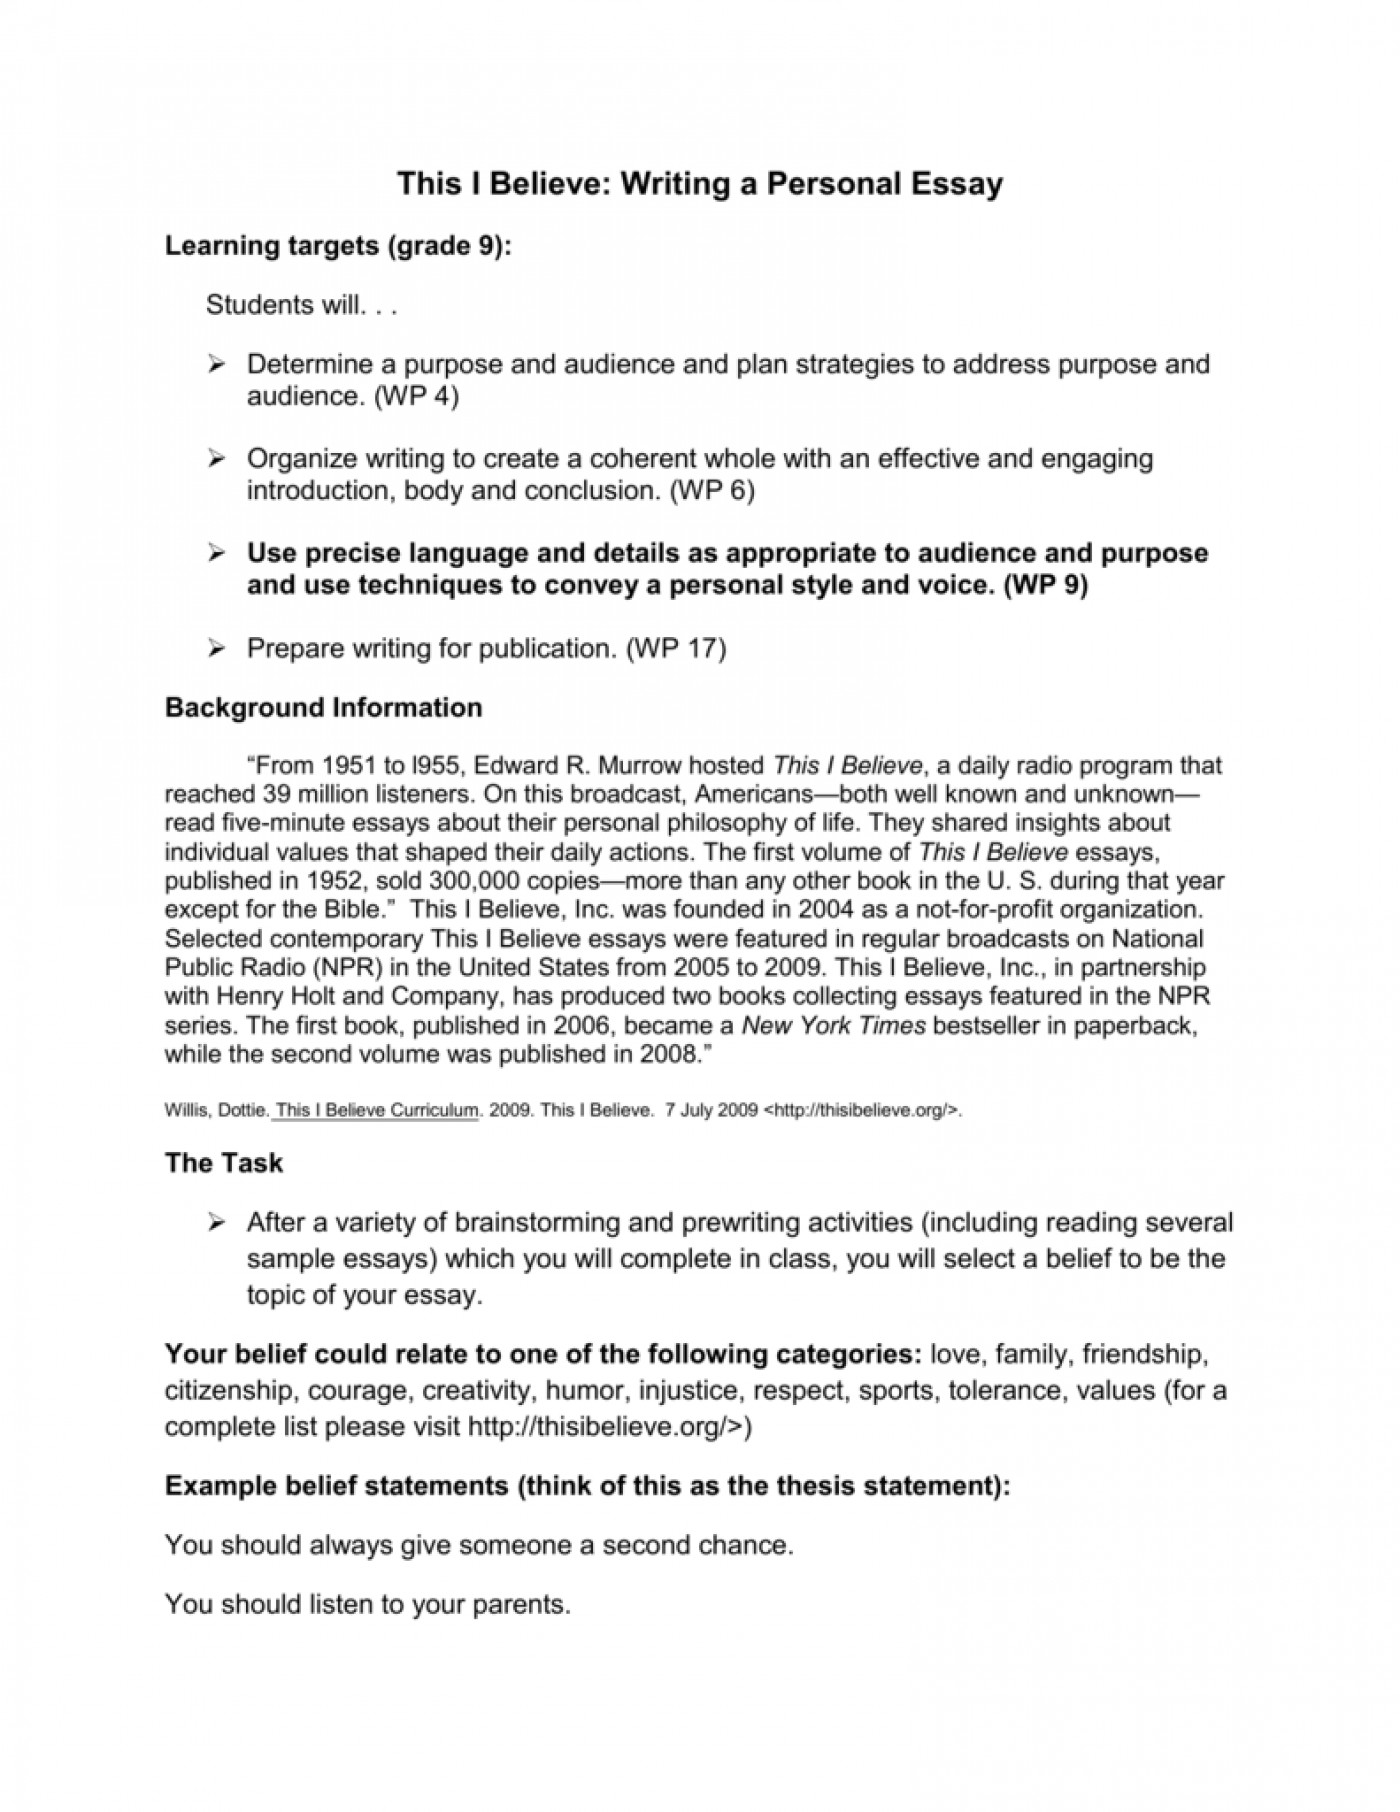 002 Essay Example I Belive Essays 006750112 1 Surprising Believe About Sports Ideas 1400